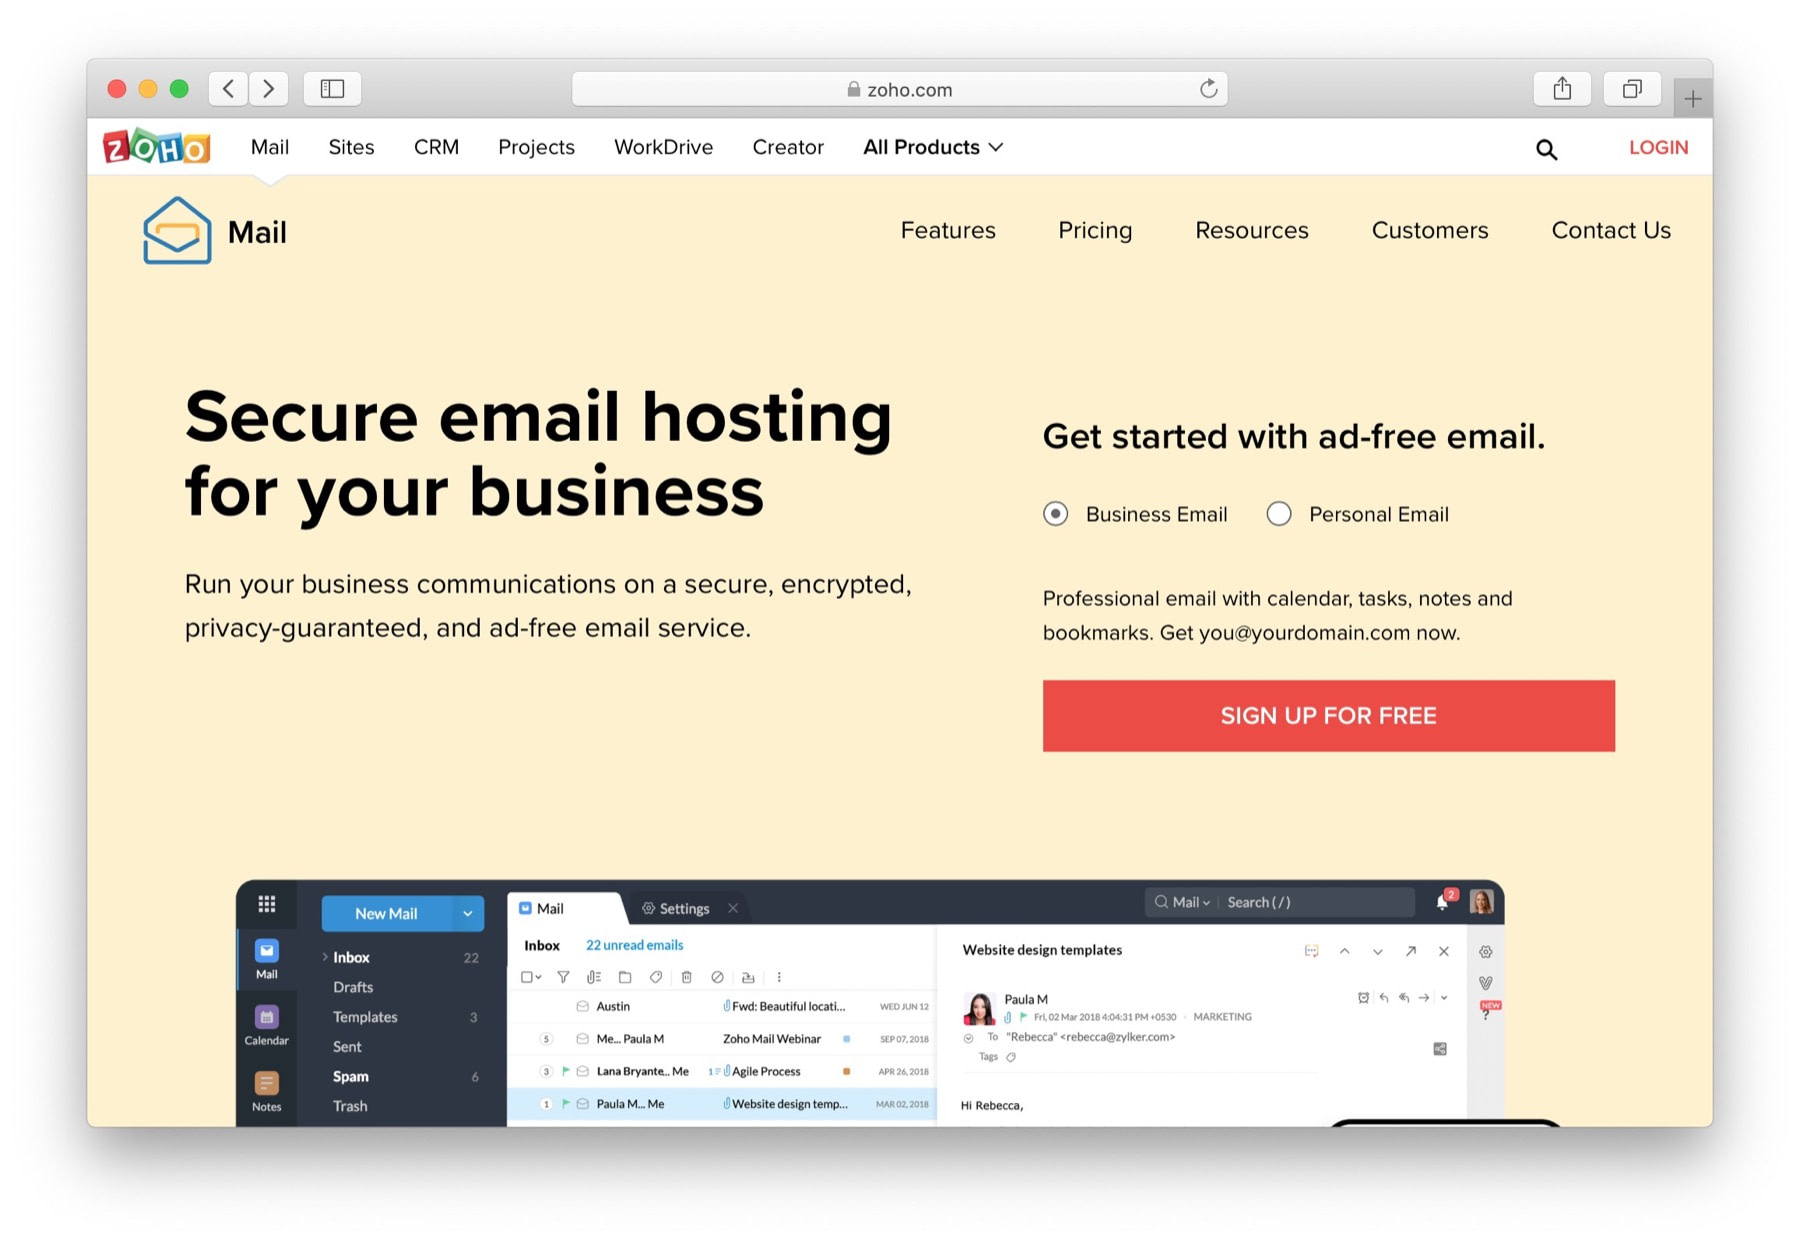 zoho mail - the simplest of the best email hosting providers